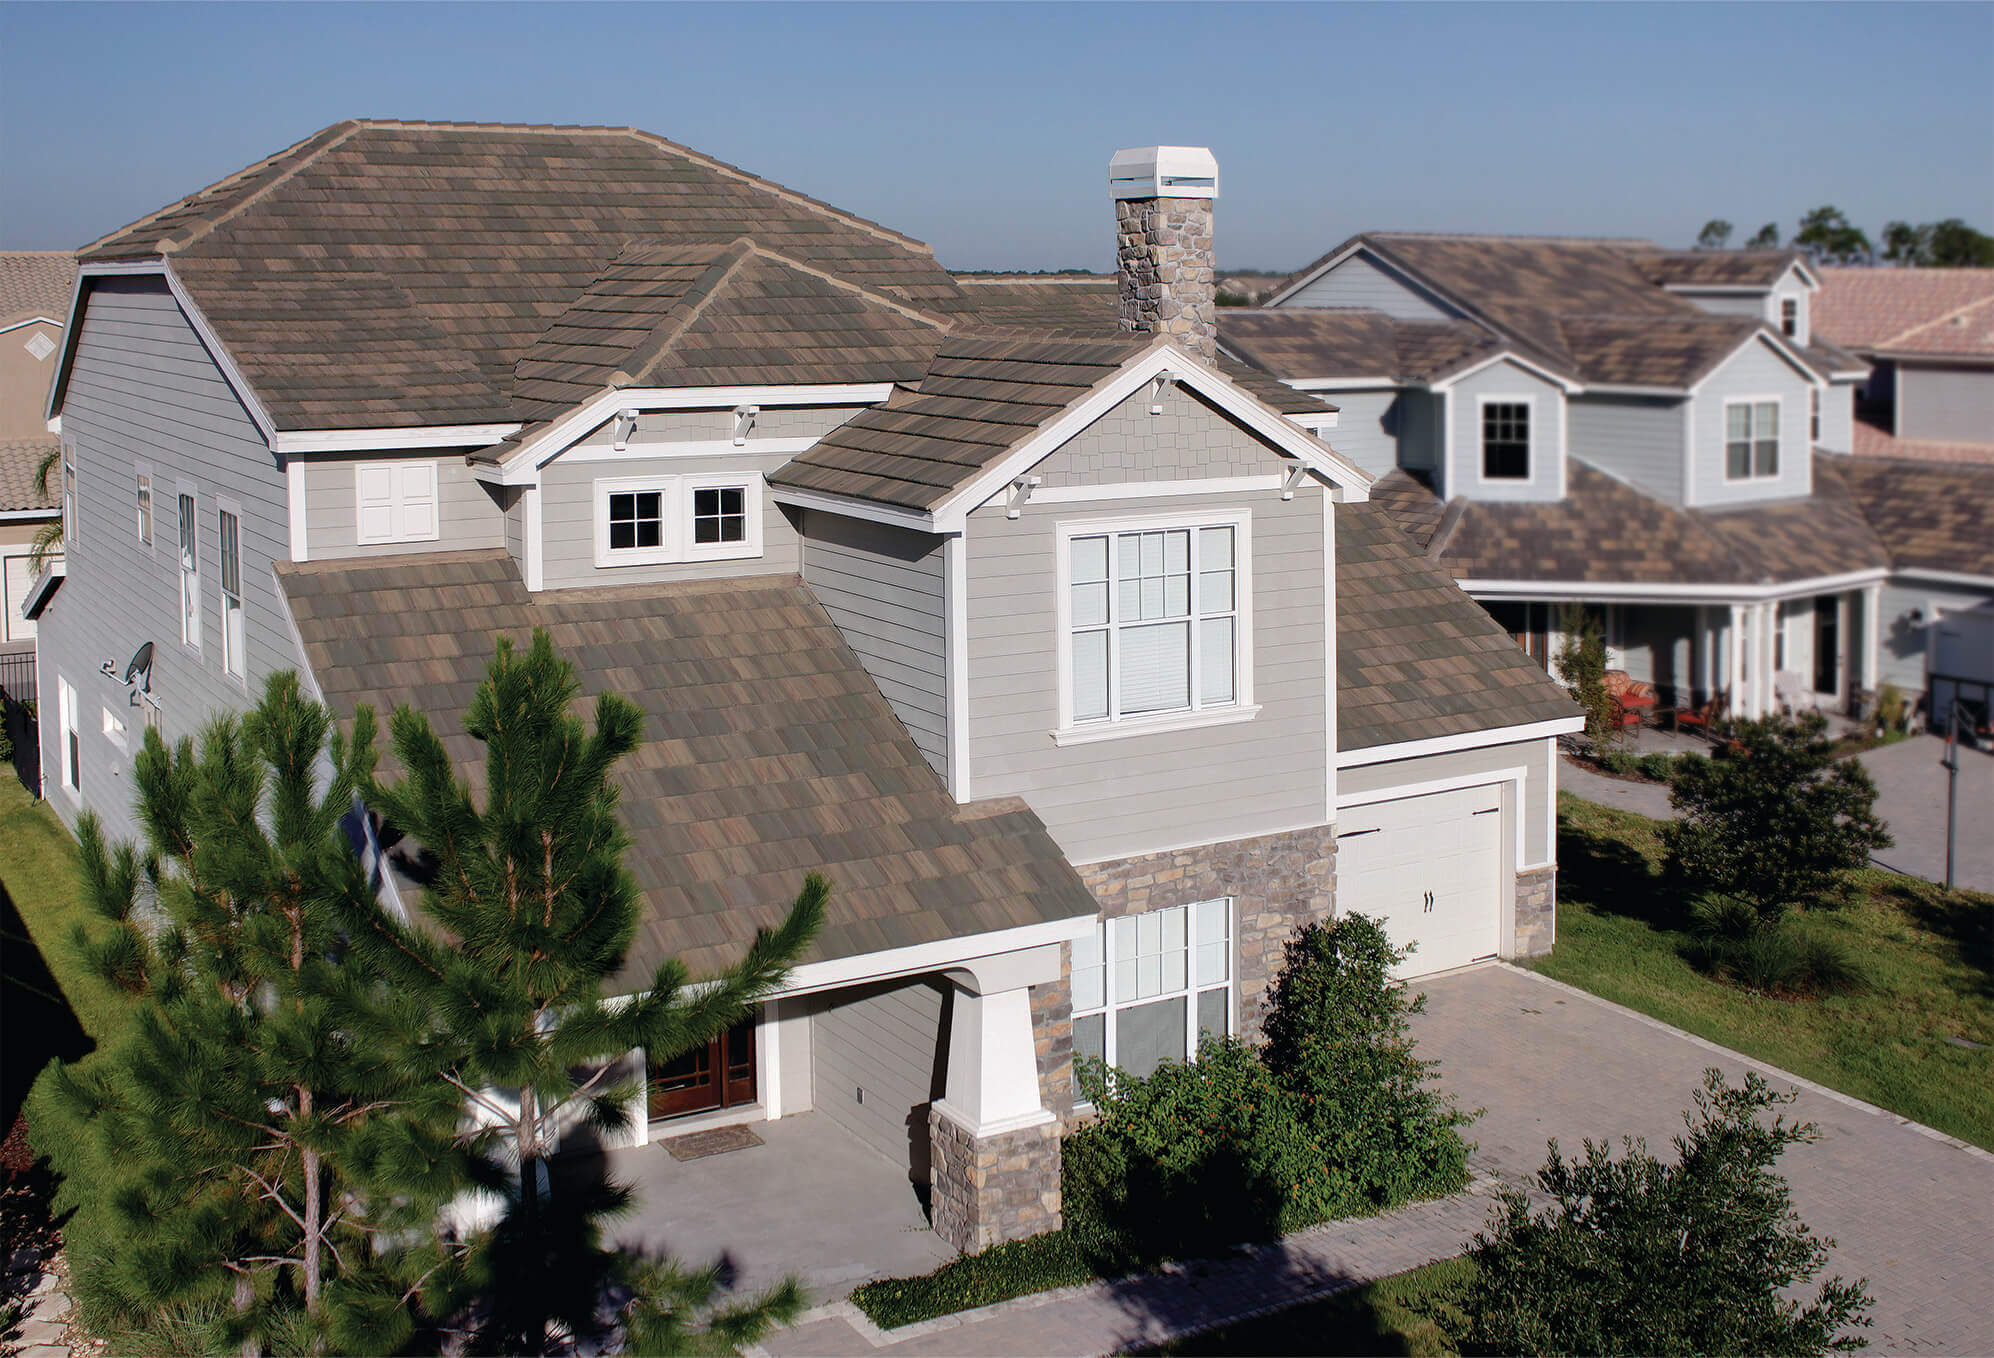 Grey two story home with white trim rests in a suburban neighborhood, protected by dark grey and brown concrete shingles.